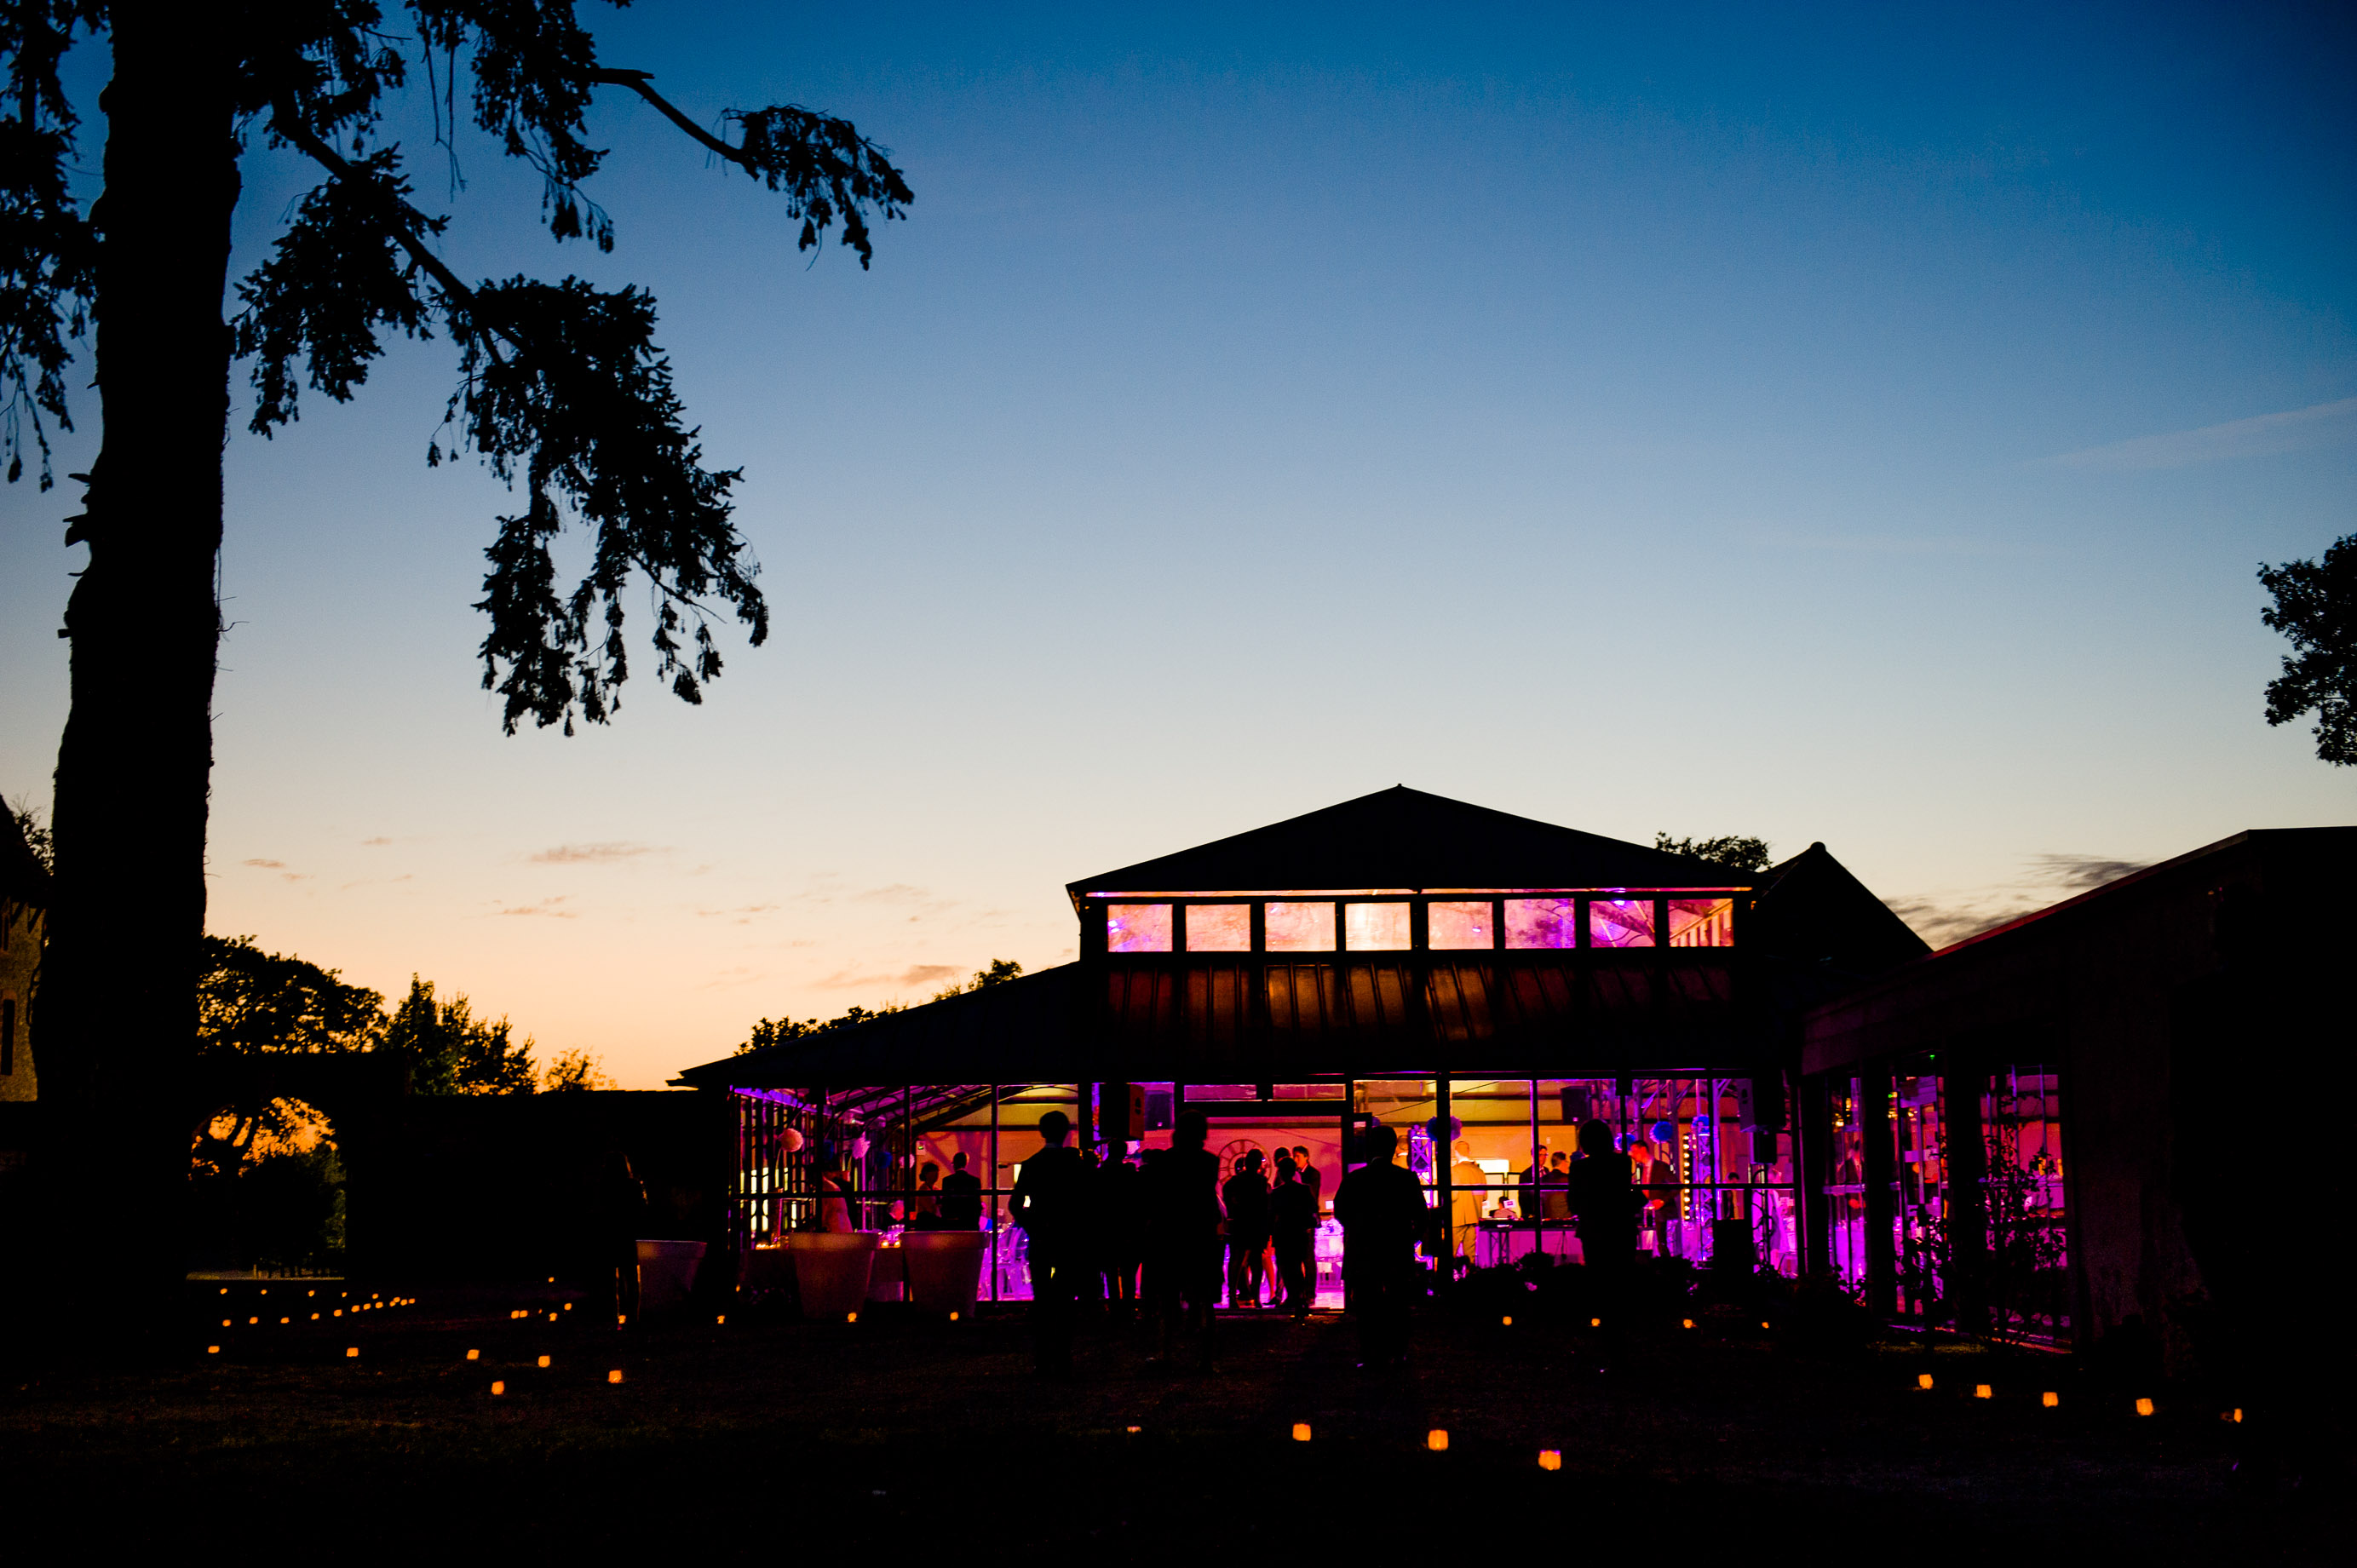 Exterior at night of Domaine des Lys Luxury Hotel in the Pays de la Loire in Ancenis